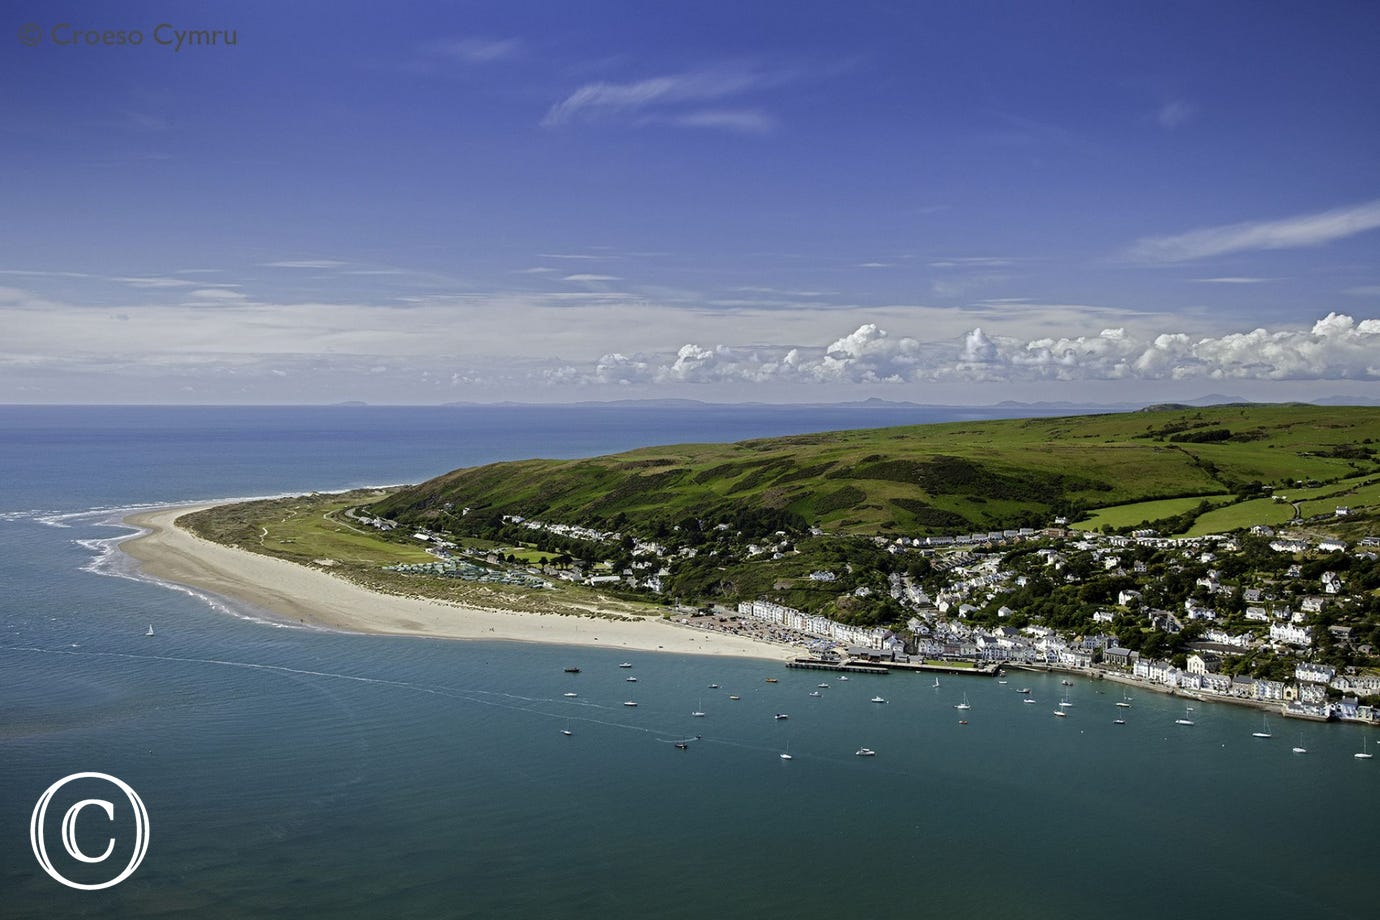 Walk the Coastal Path from Aberdyfi to Tywyn along a 5 mile beach